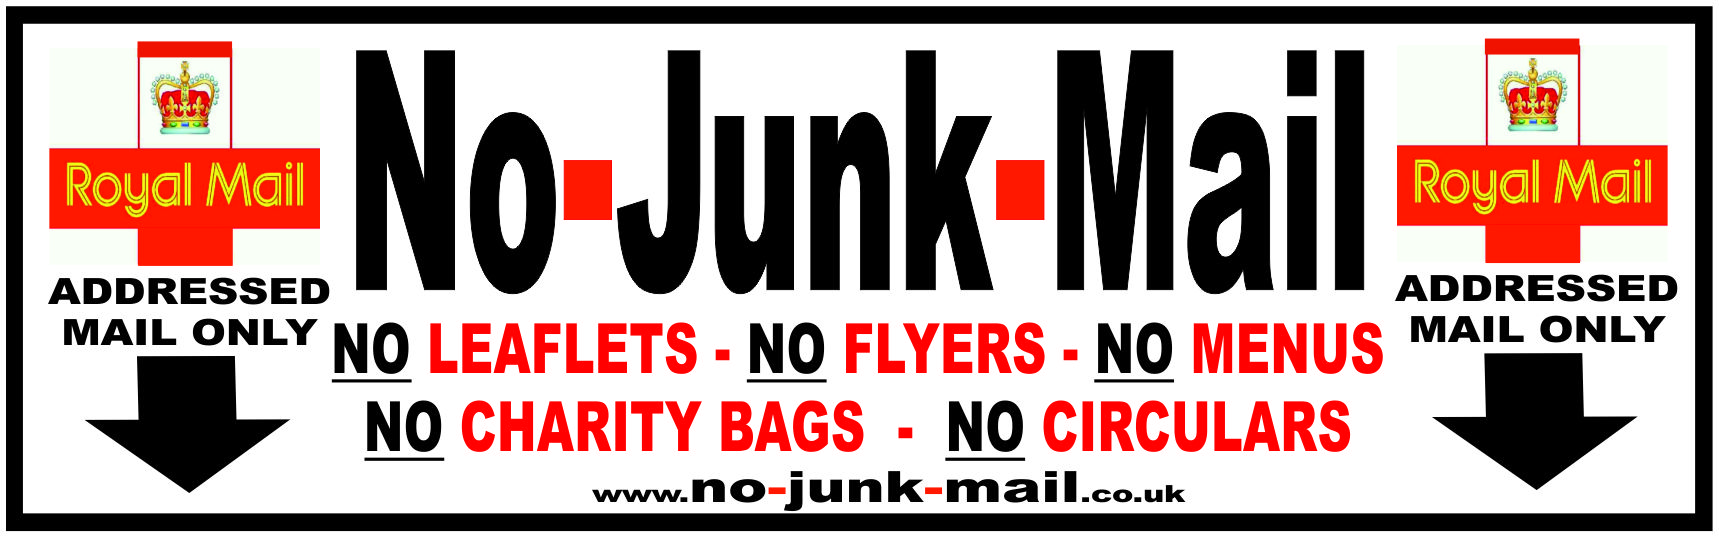 No Junk Mail Letterbox Signs No Junk Mail Window Stickers UK - Vinyl stickers uk